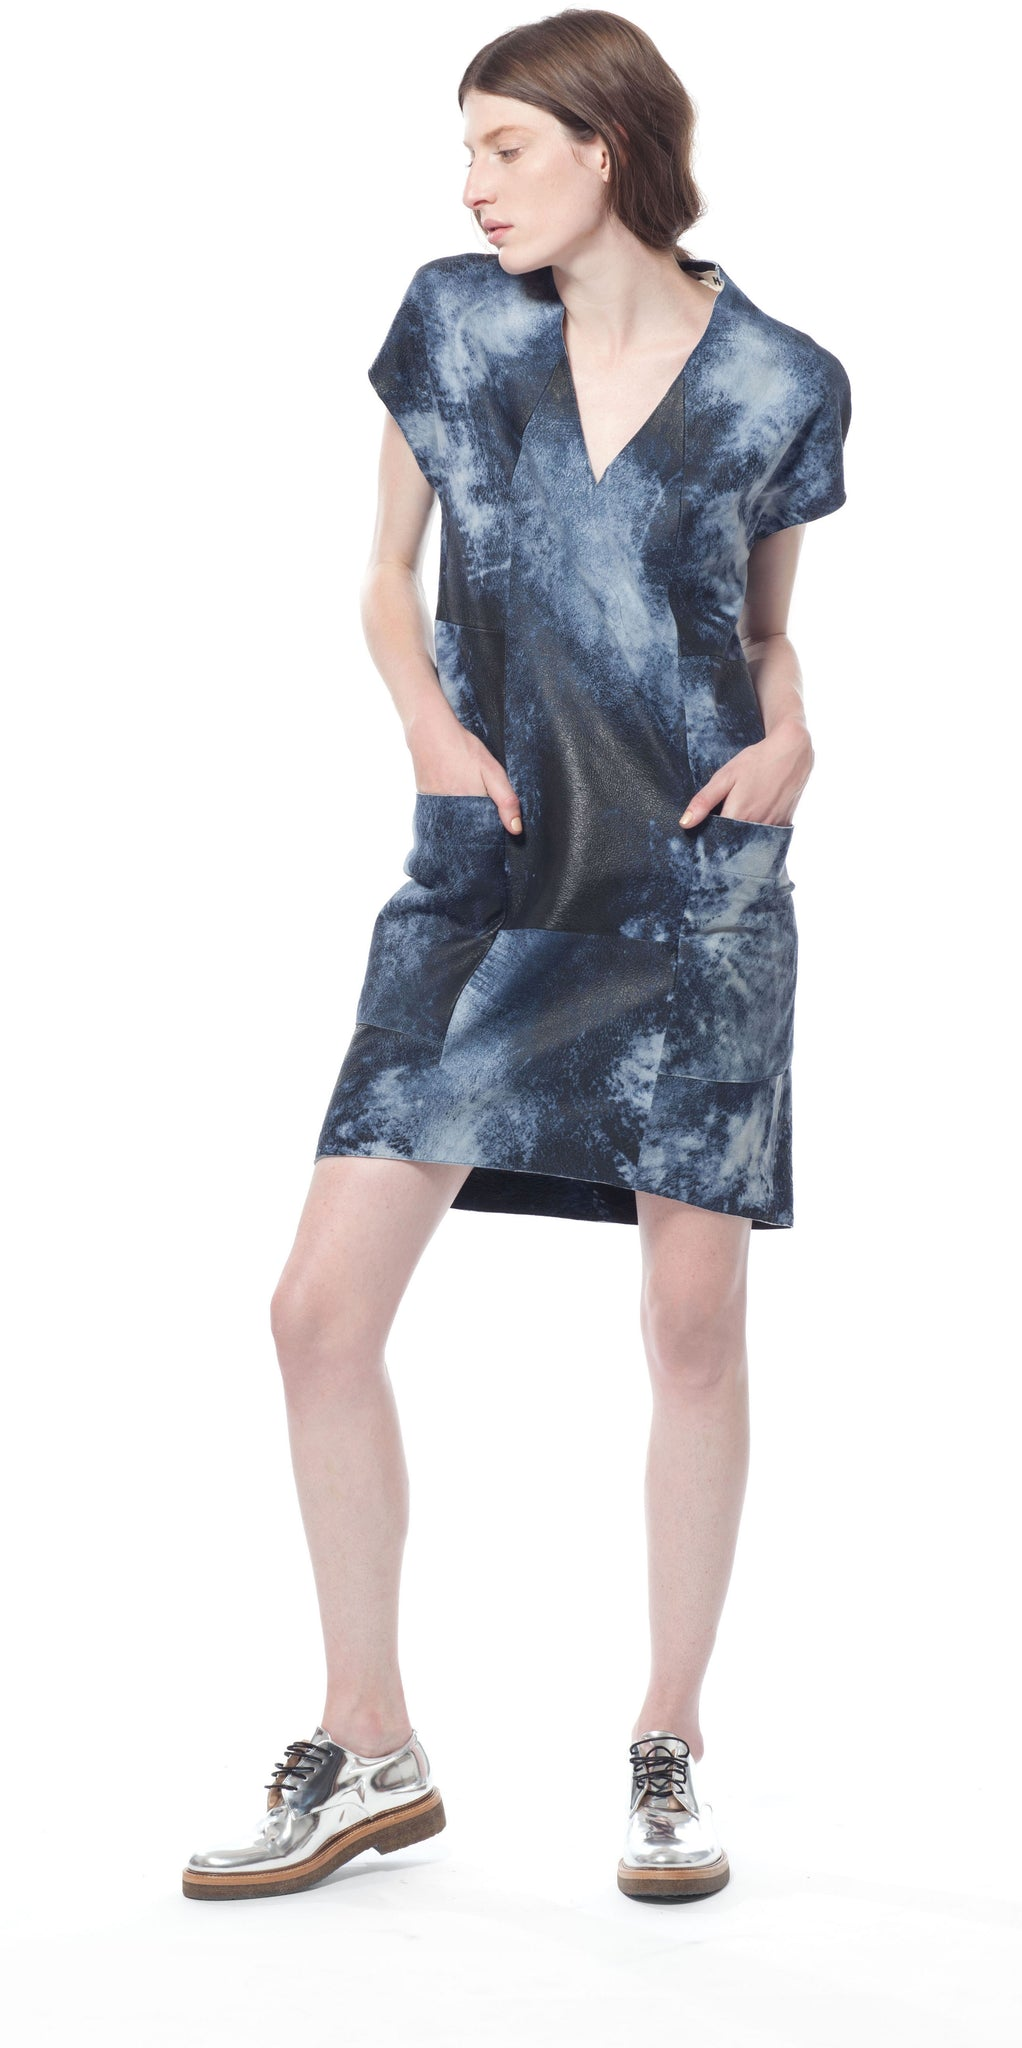 Polygon Leather Dress in Ocean Splash